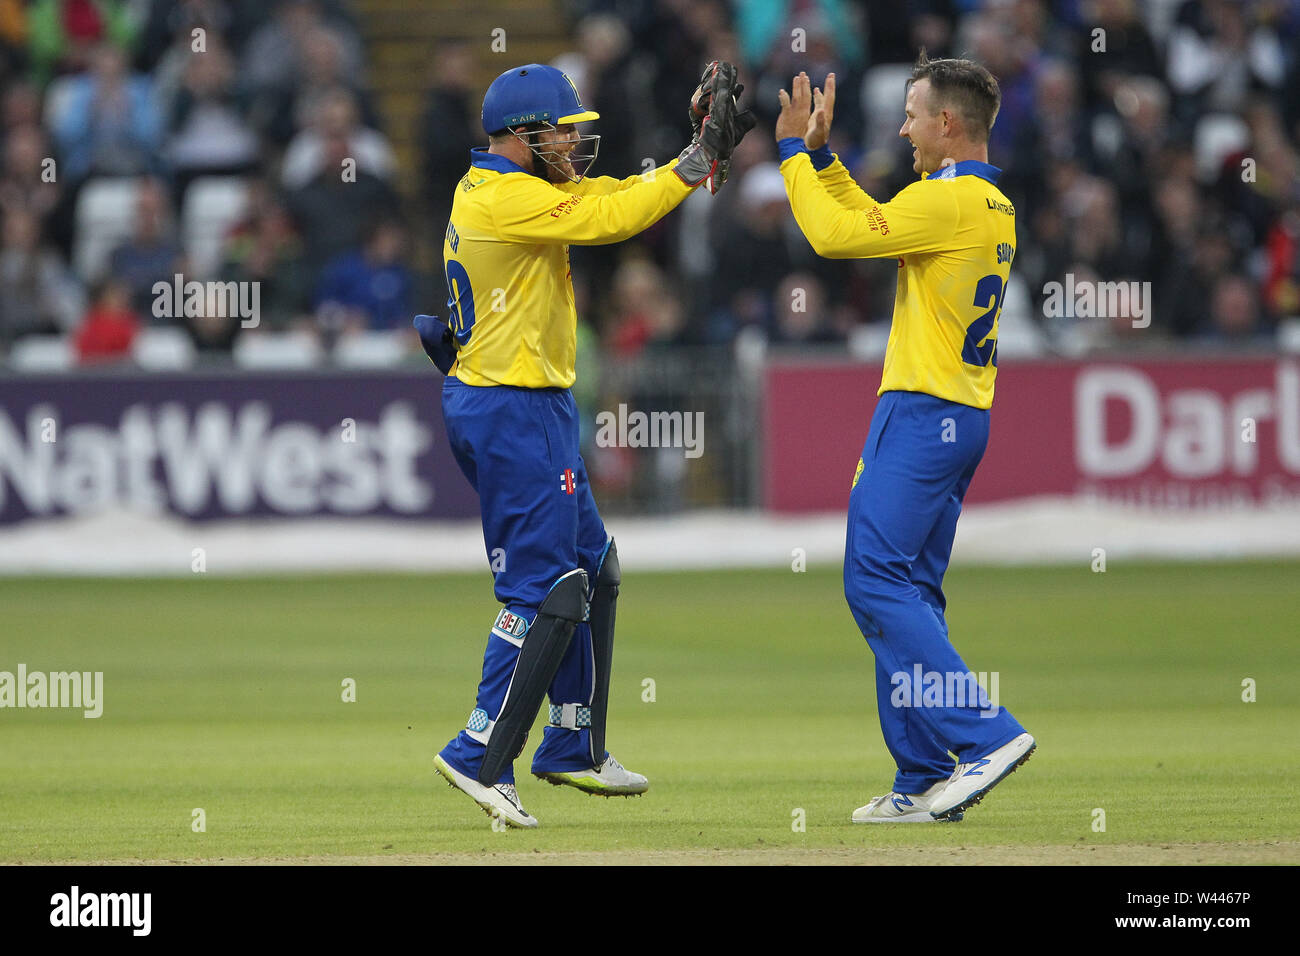 CHESTER LE STREET, ENGLAND 19th July 2019. Durham's Stuart Poynter and D'arcy Short celebrate after Poynter caught Adam Rossington off Short's bowling during the Vitality T20 Blast match between Durham County Cricket Club and Northamptonshire County Cricket Club at Emirates Riverside, Chester le Street on Friday 19th July 2019. (Credit: Mark Fletcher   MI News ) Credit: MI News & Sport /Alamy Live News - Stock Image